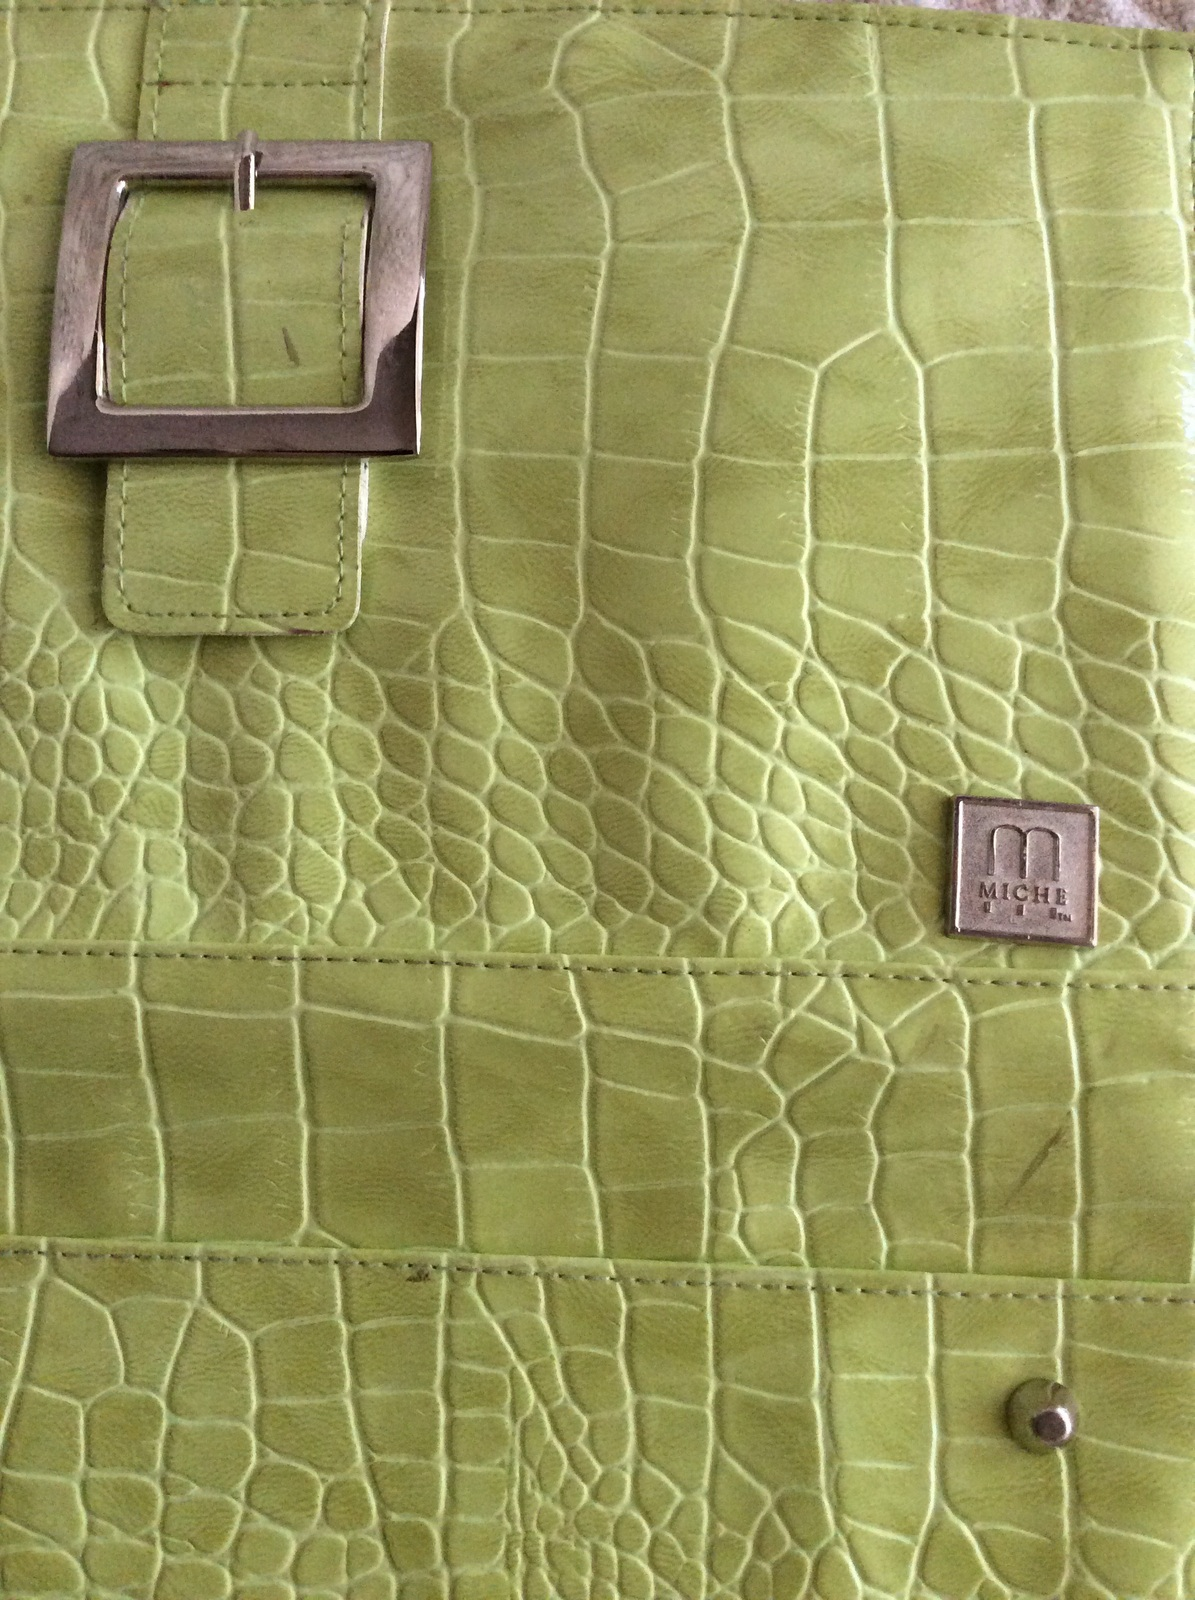 Miche Classic Shell Ellie in Green w/ silver buckle